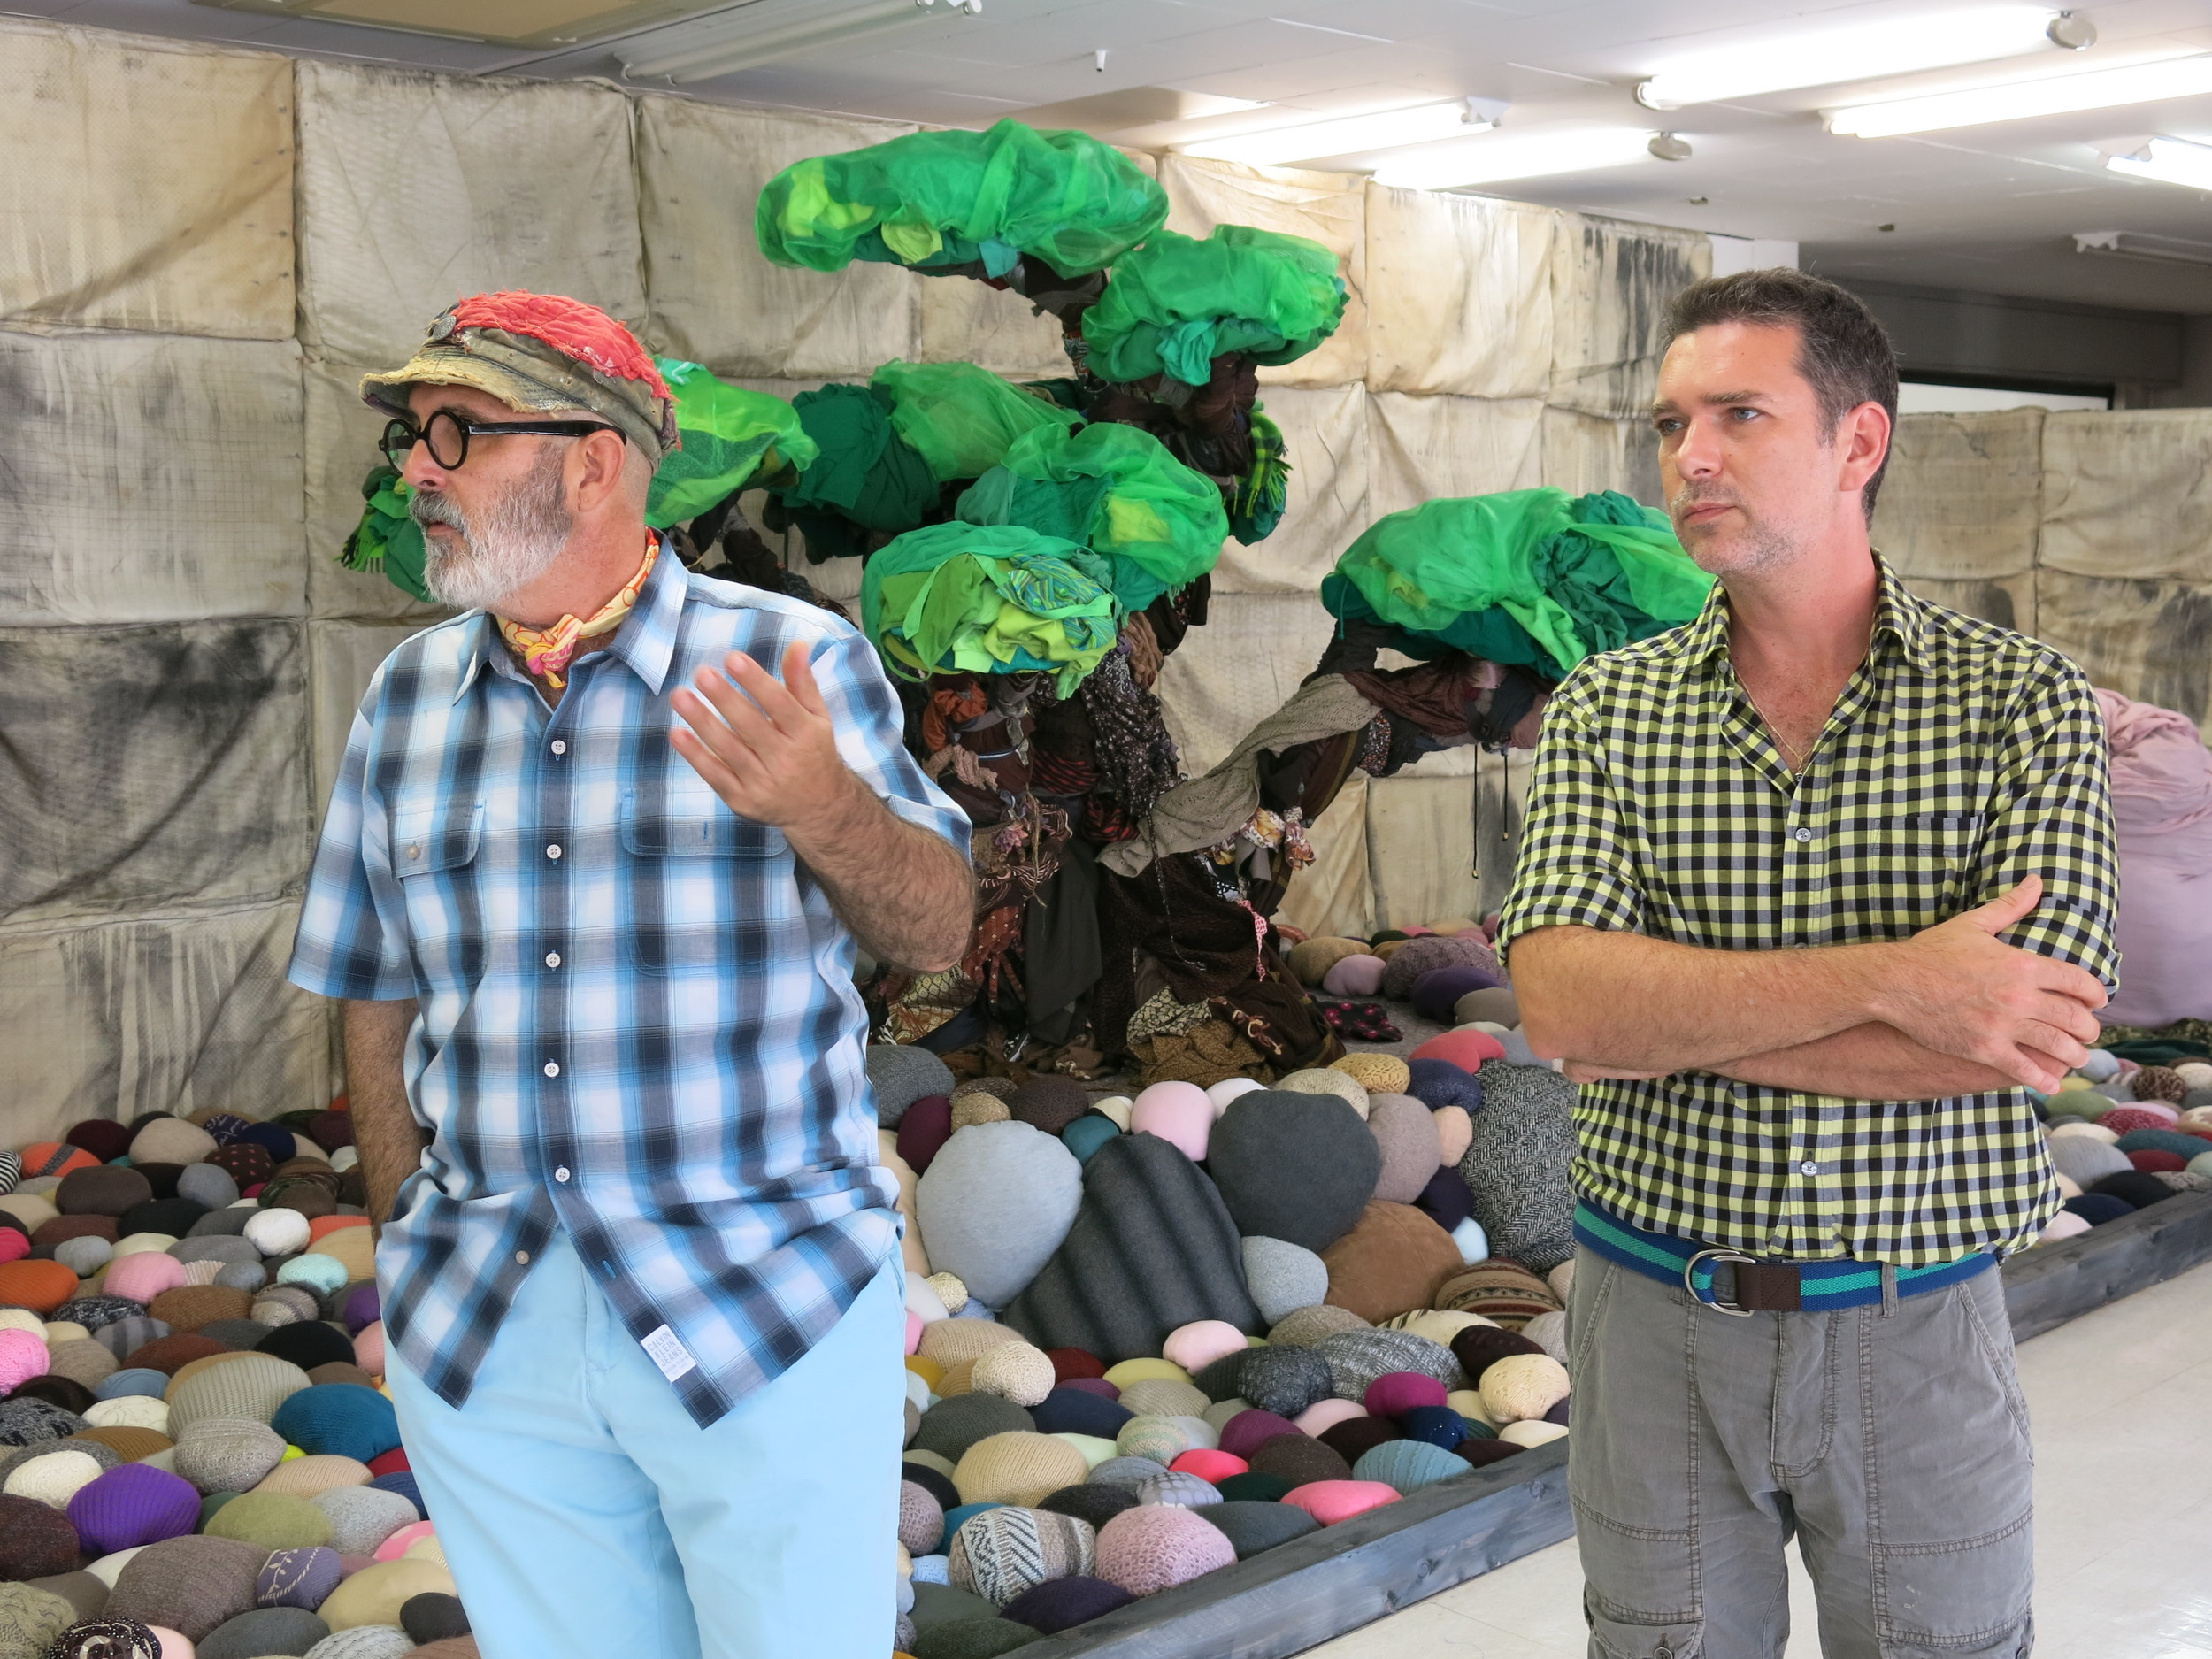 LA-based artists   Alain Guerra and Neraldo de la Paz, collectively known as    Guerra de la Paz   , pictured in front of  Secret Garden , 2013 on the unused top floor of a shopping mall in the Higashi Okazaki Station.     While they generally source their materials from the waste bins of second-hand goods shipping companies in Miami's Little Haiti, for their site-specific work at the Aichi Triennale they use clothes from the factories in Ozahaki.   Okazaki site.